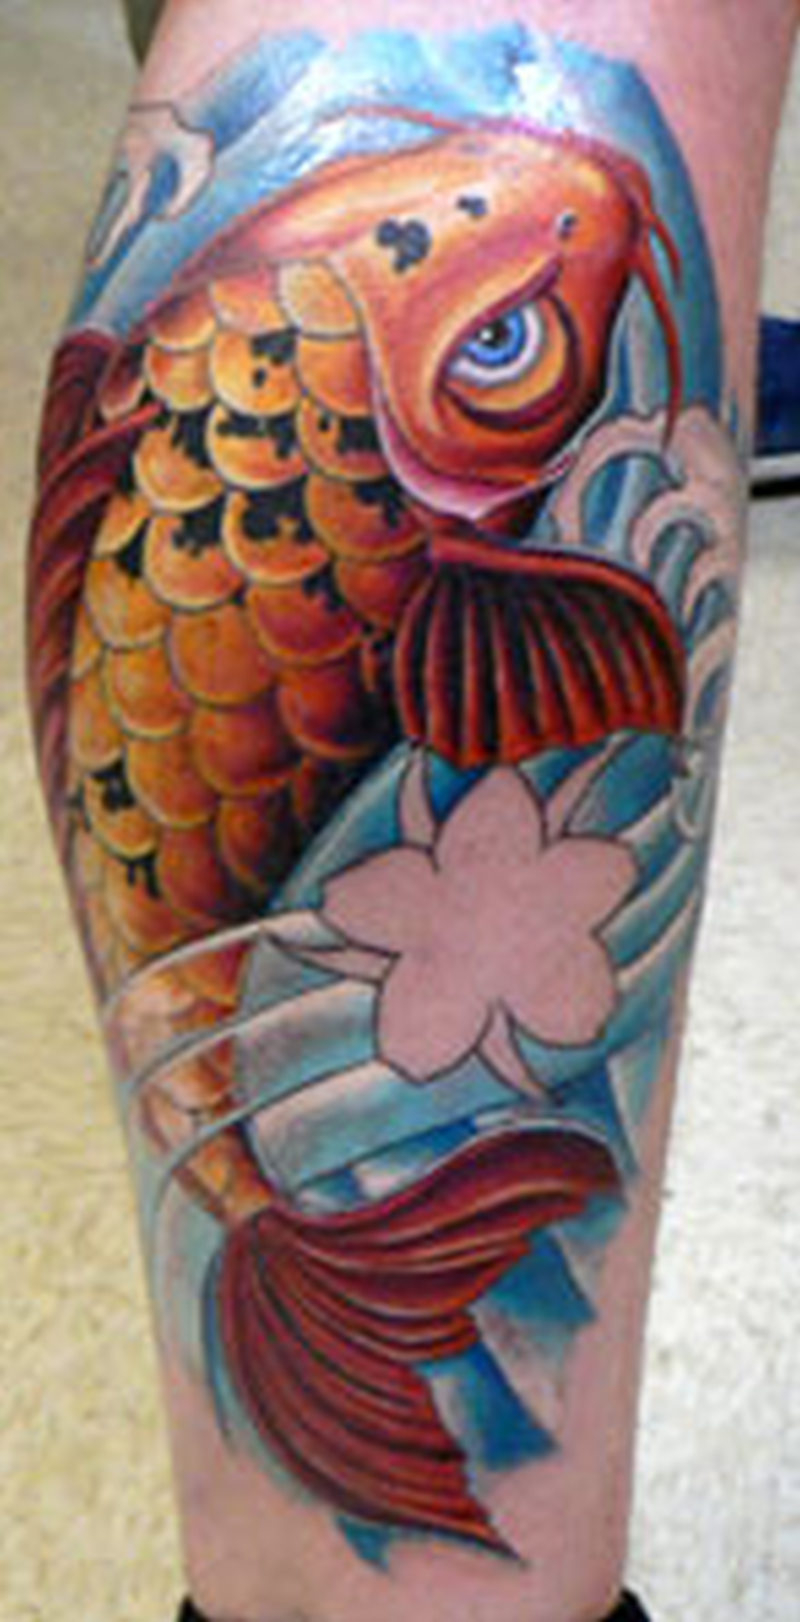 Koi Fish Asian Leg Design Tattoo Tattoos Book 65 000 Tattoos Designs